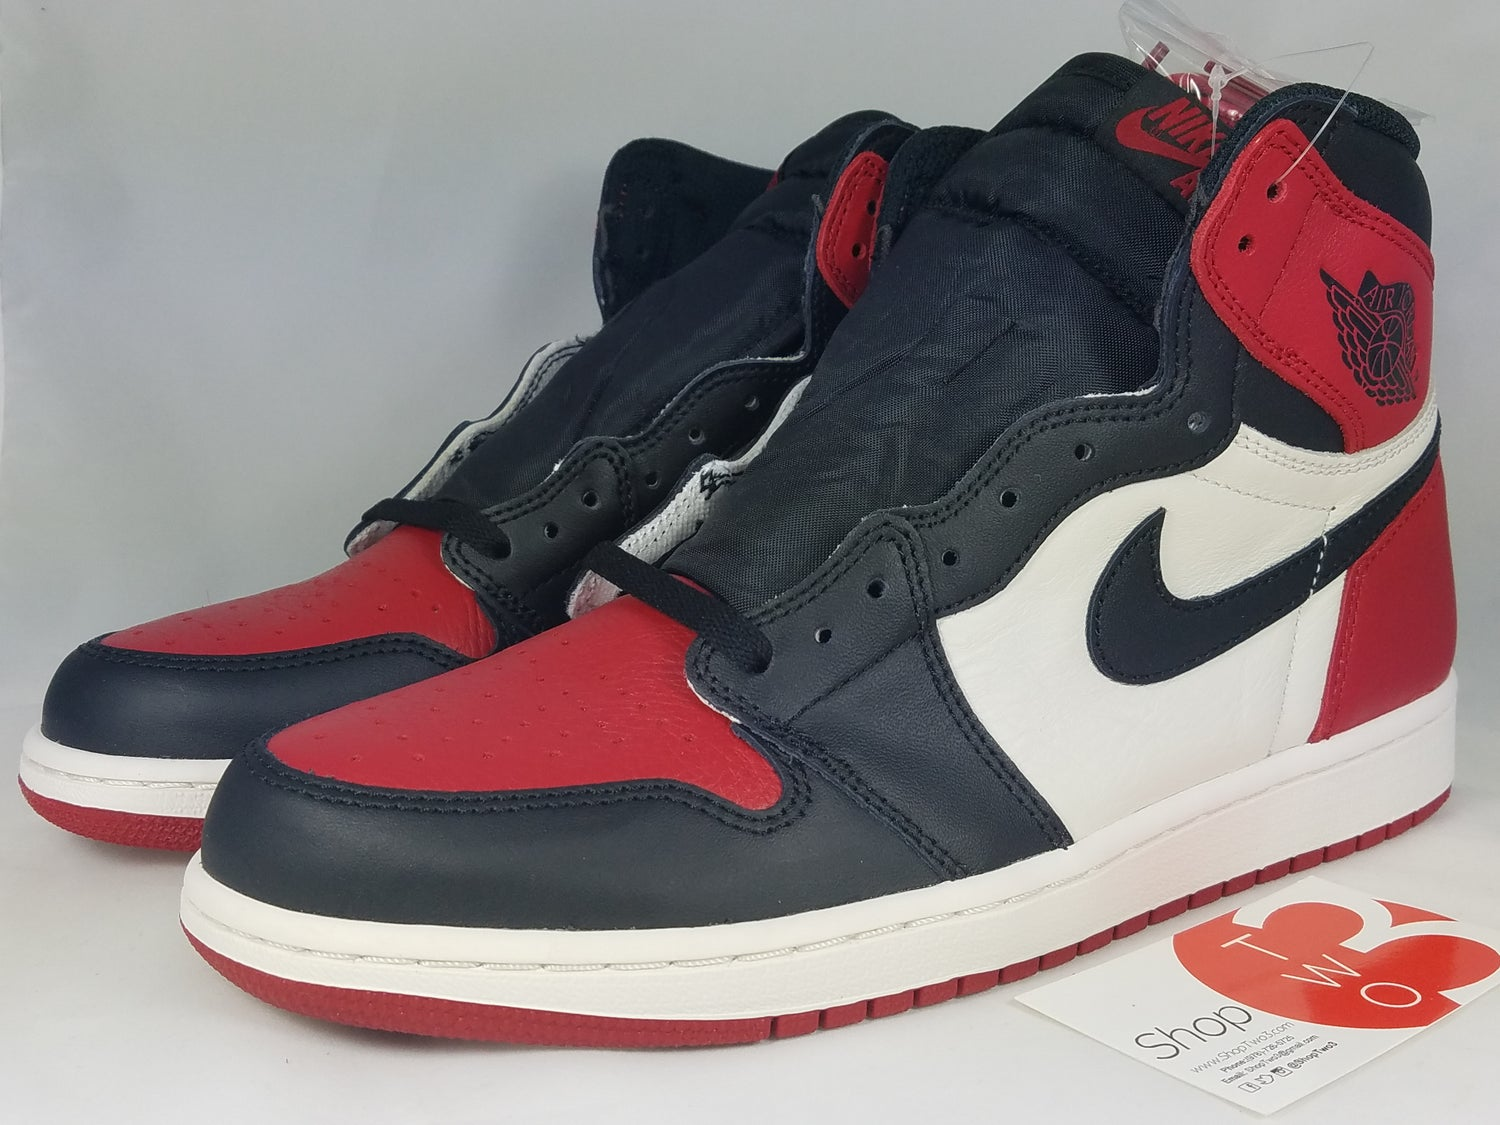 70bf72aafd7c0 Image of Jordan 1 Retro High Bred Toe